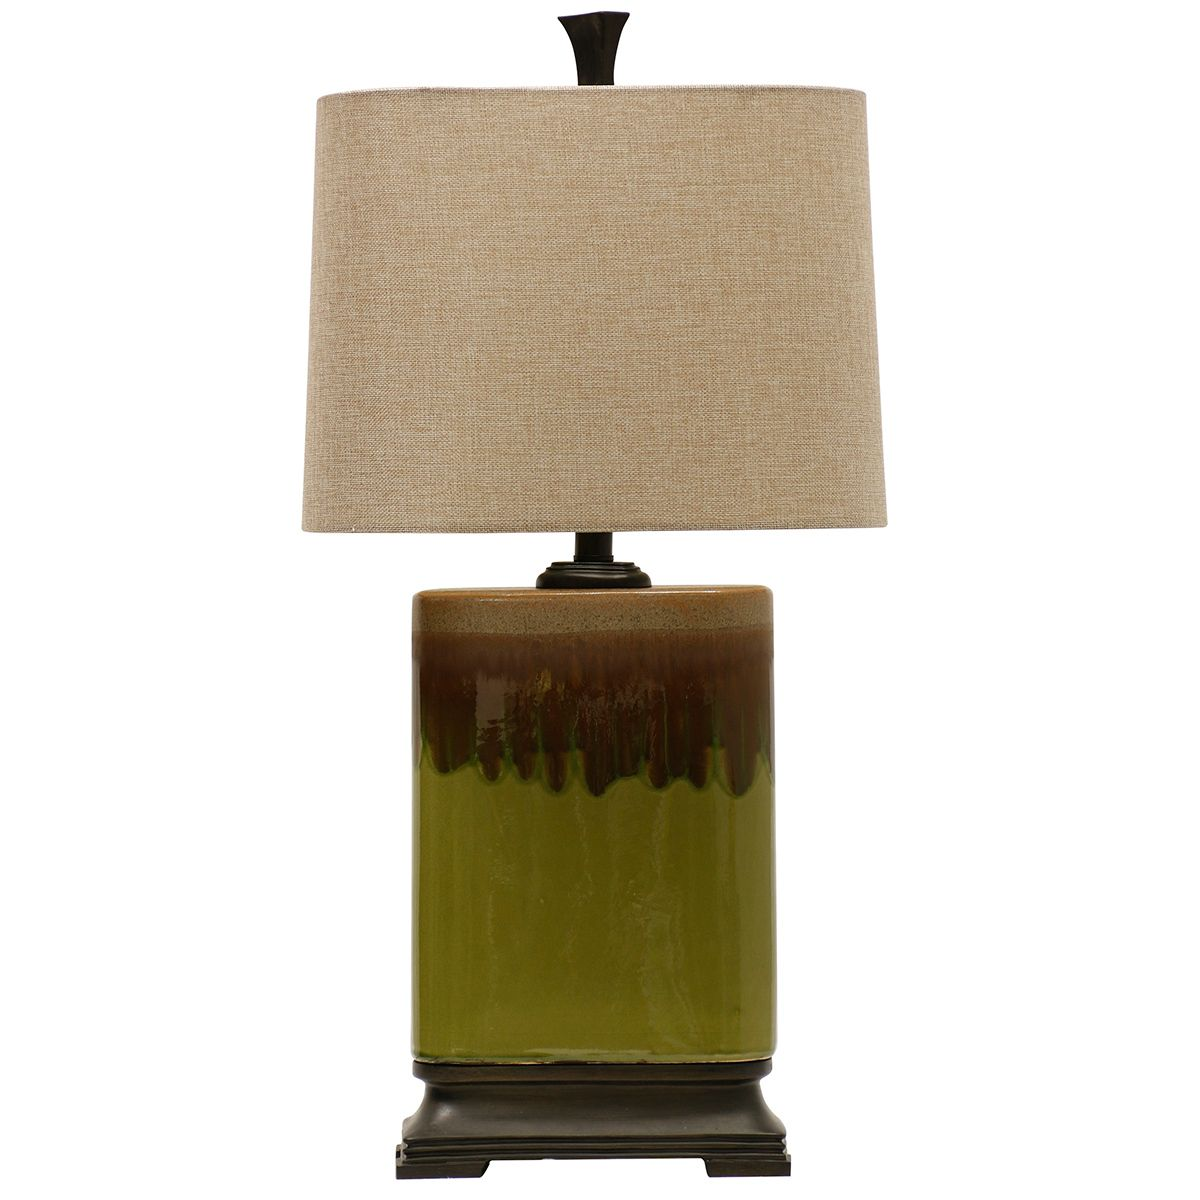 Blocky Dripped Finish Table Lamp